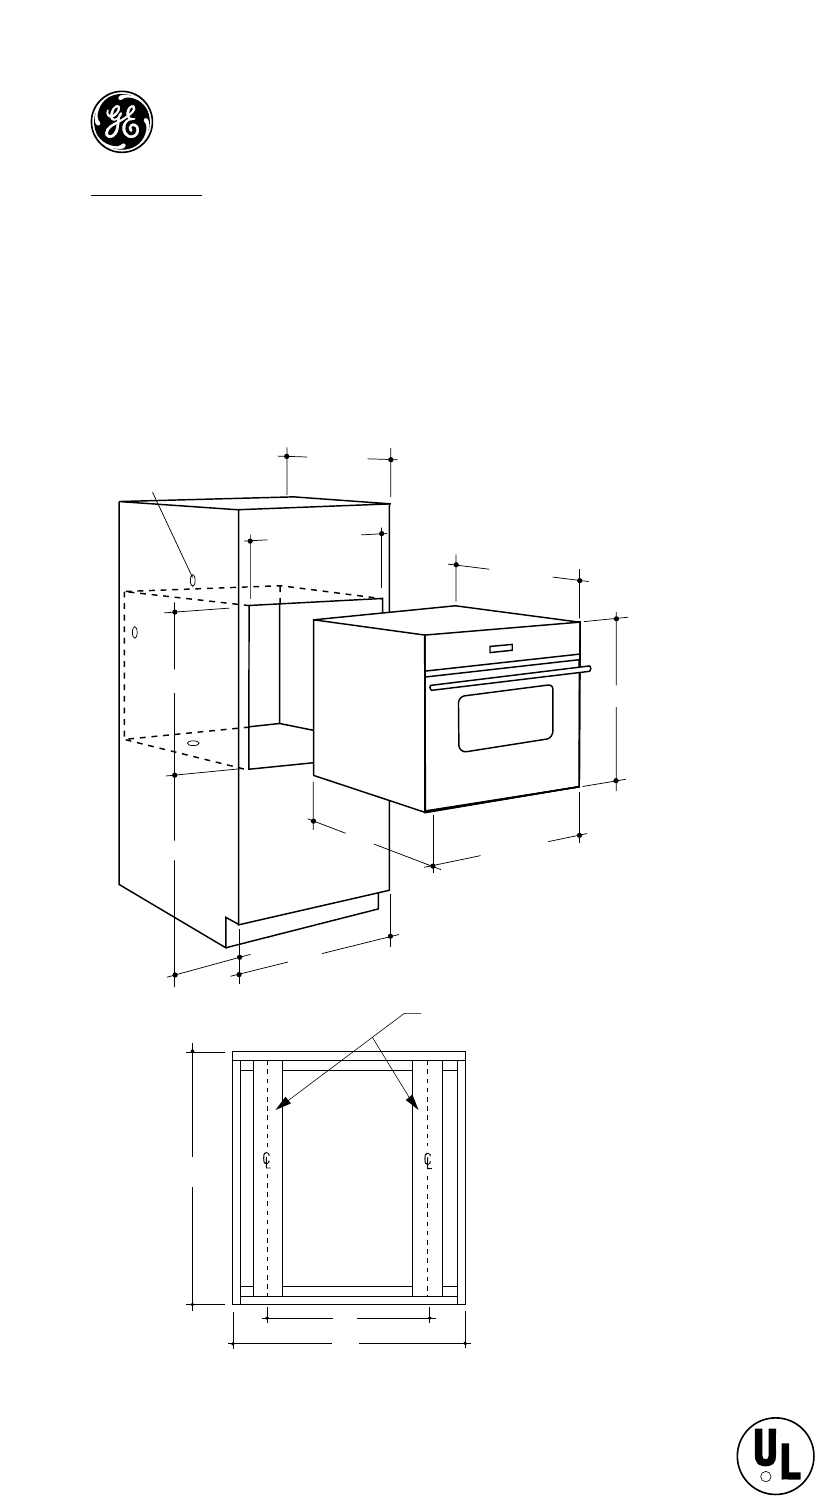 Ge Monogram Convection Oven Zet837bbbb User Guide Manual Guide